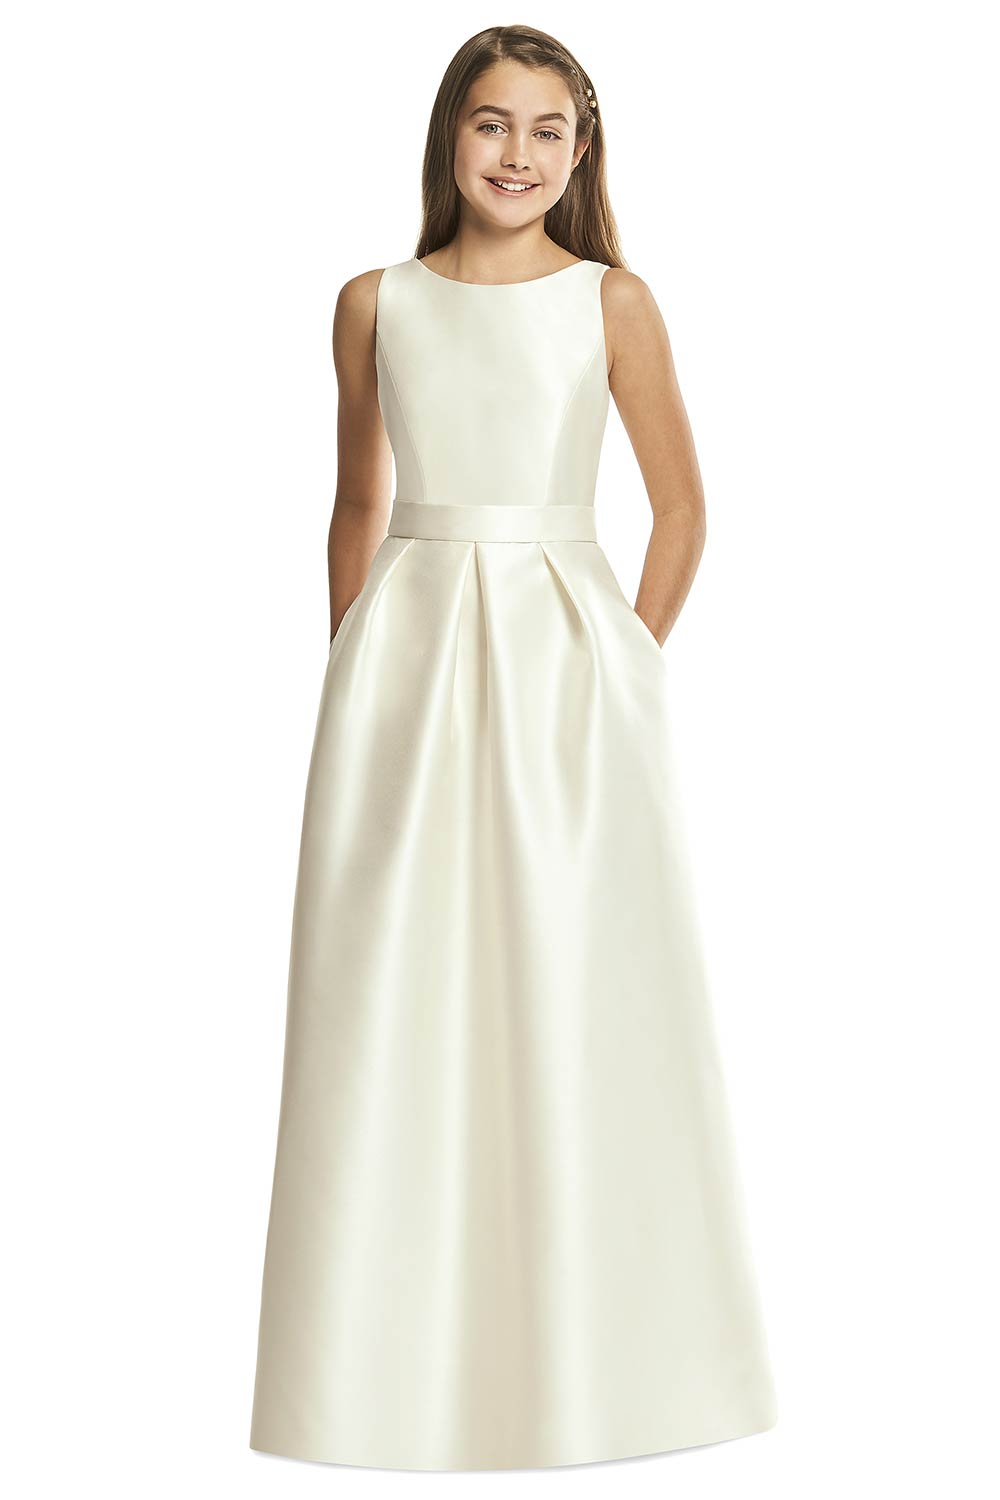 bridesmaid-dresses-dessy-27161